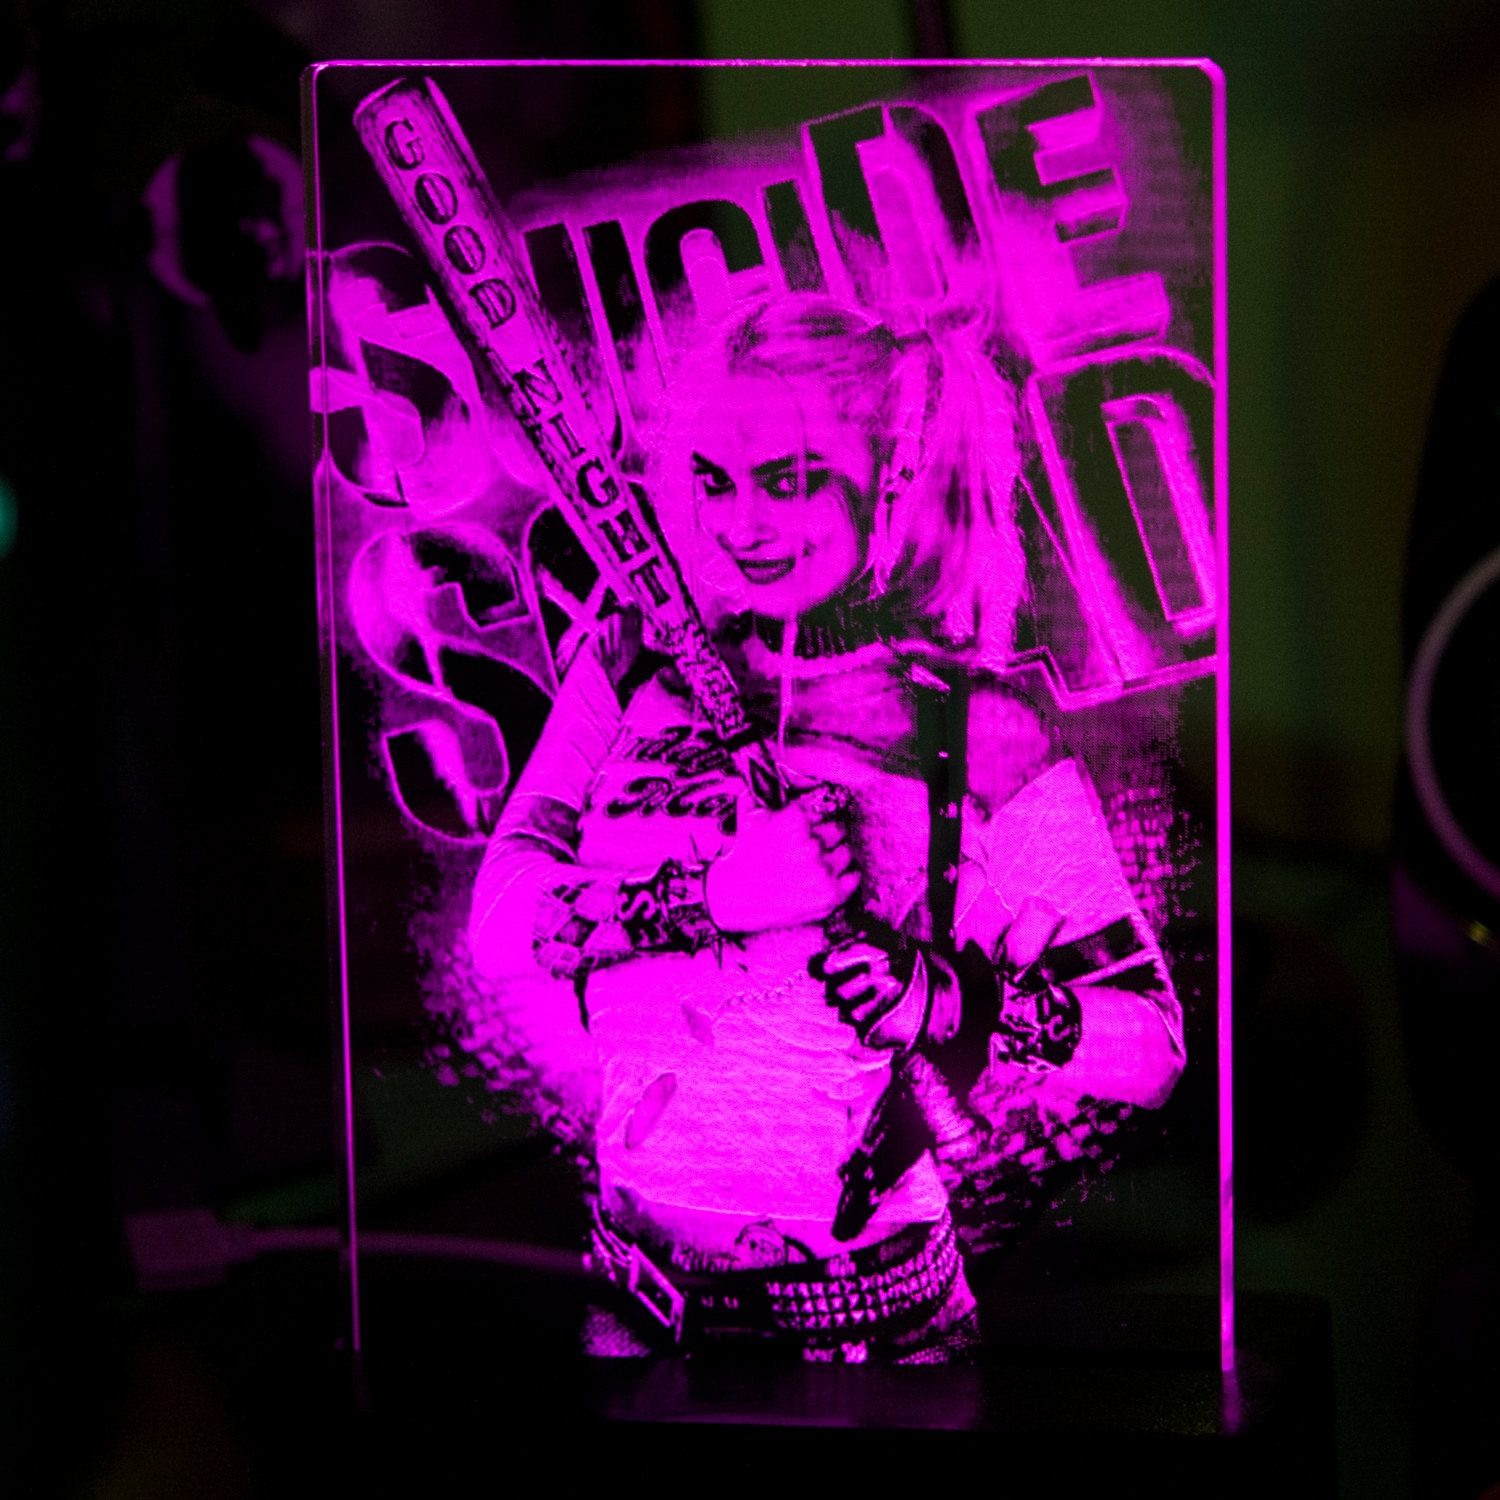 Doctor Harley Quinn Suicide Squad LED acrylic display sign by HeroLights on Etsy